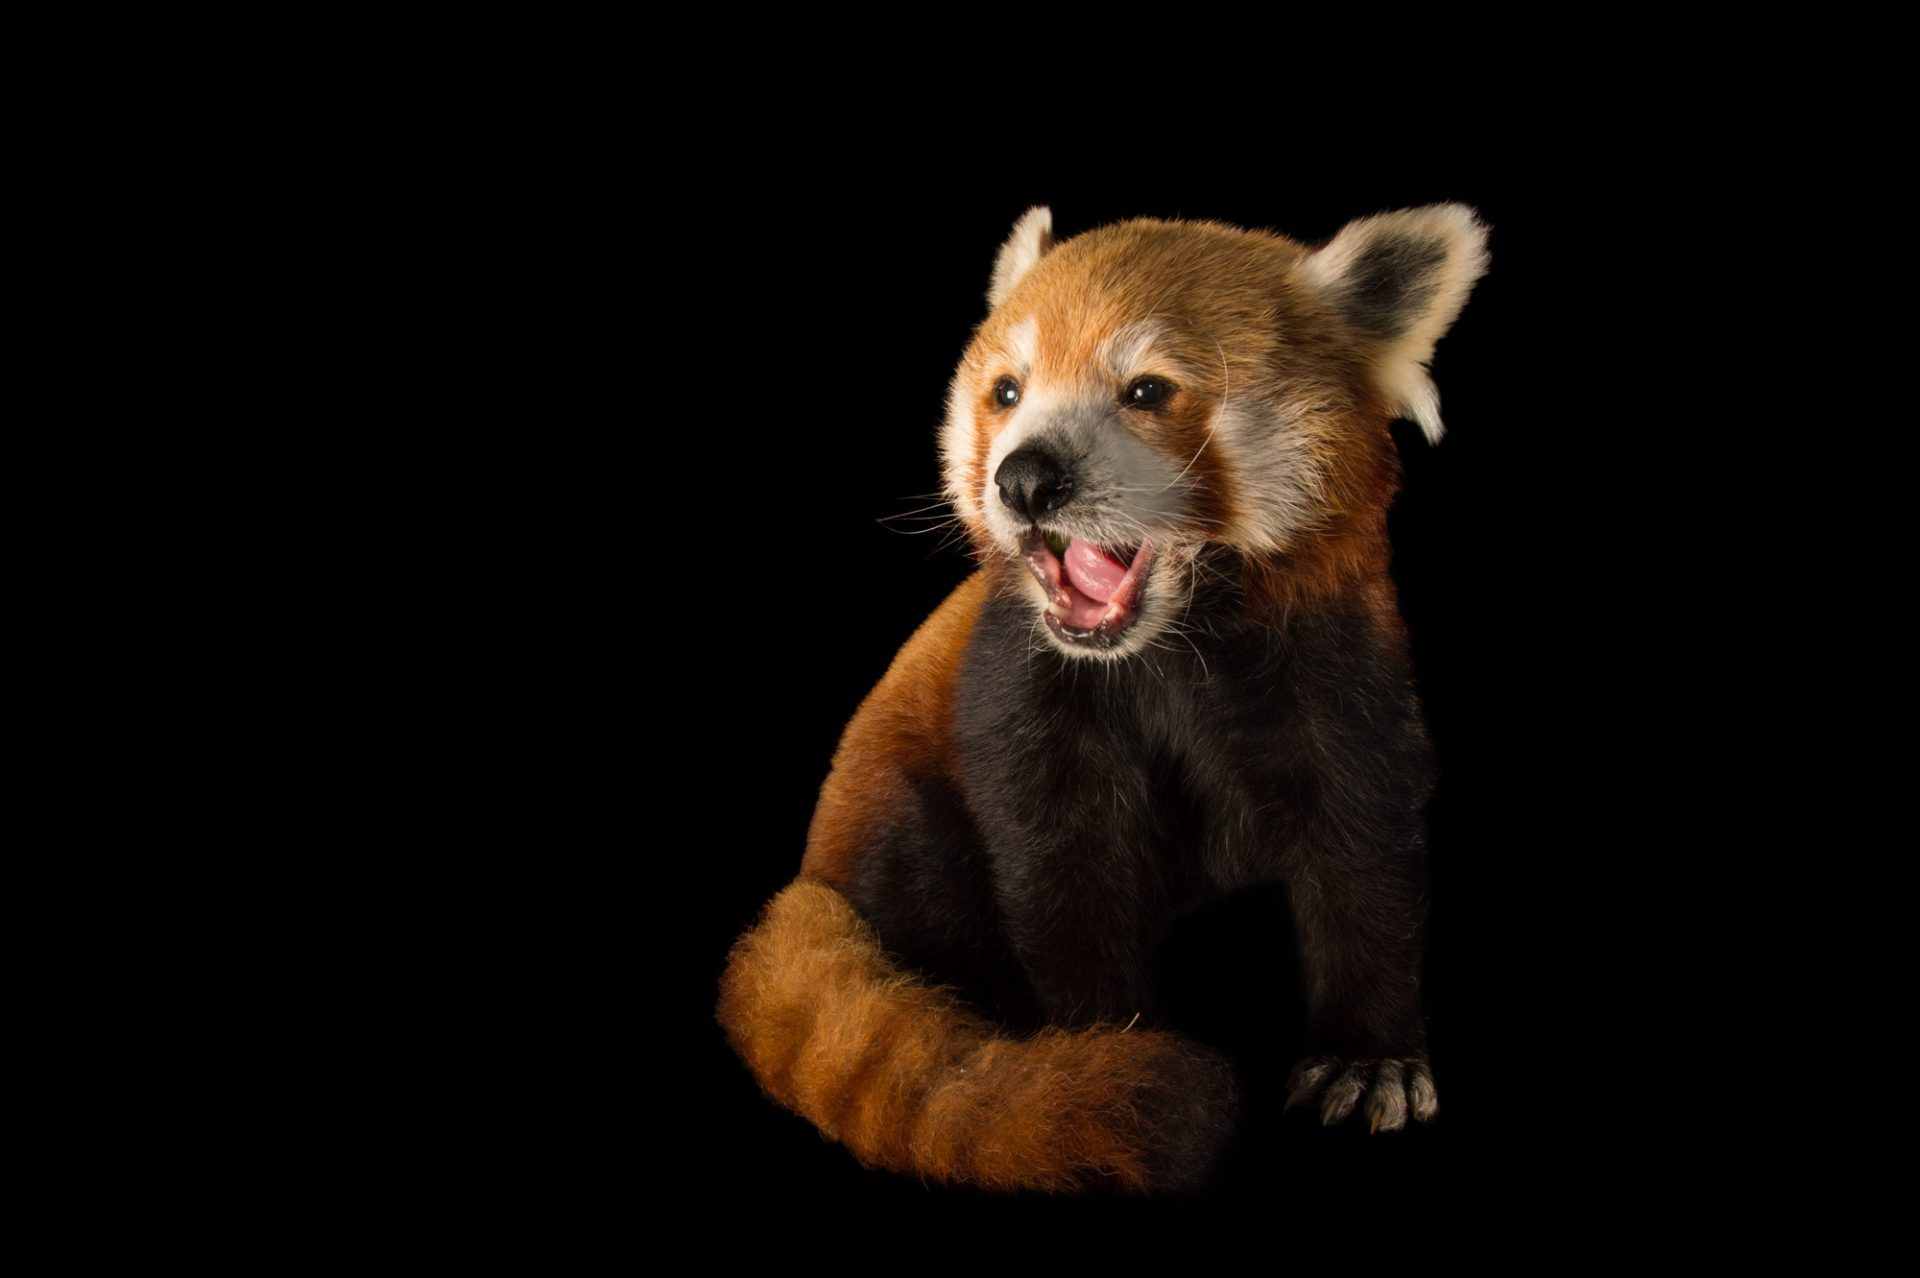 Picture of an endangered, male Western red panda (Ailurus fulgens fulgens) named Nigalya at the Chattanooga Zoo.